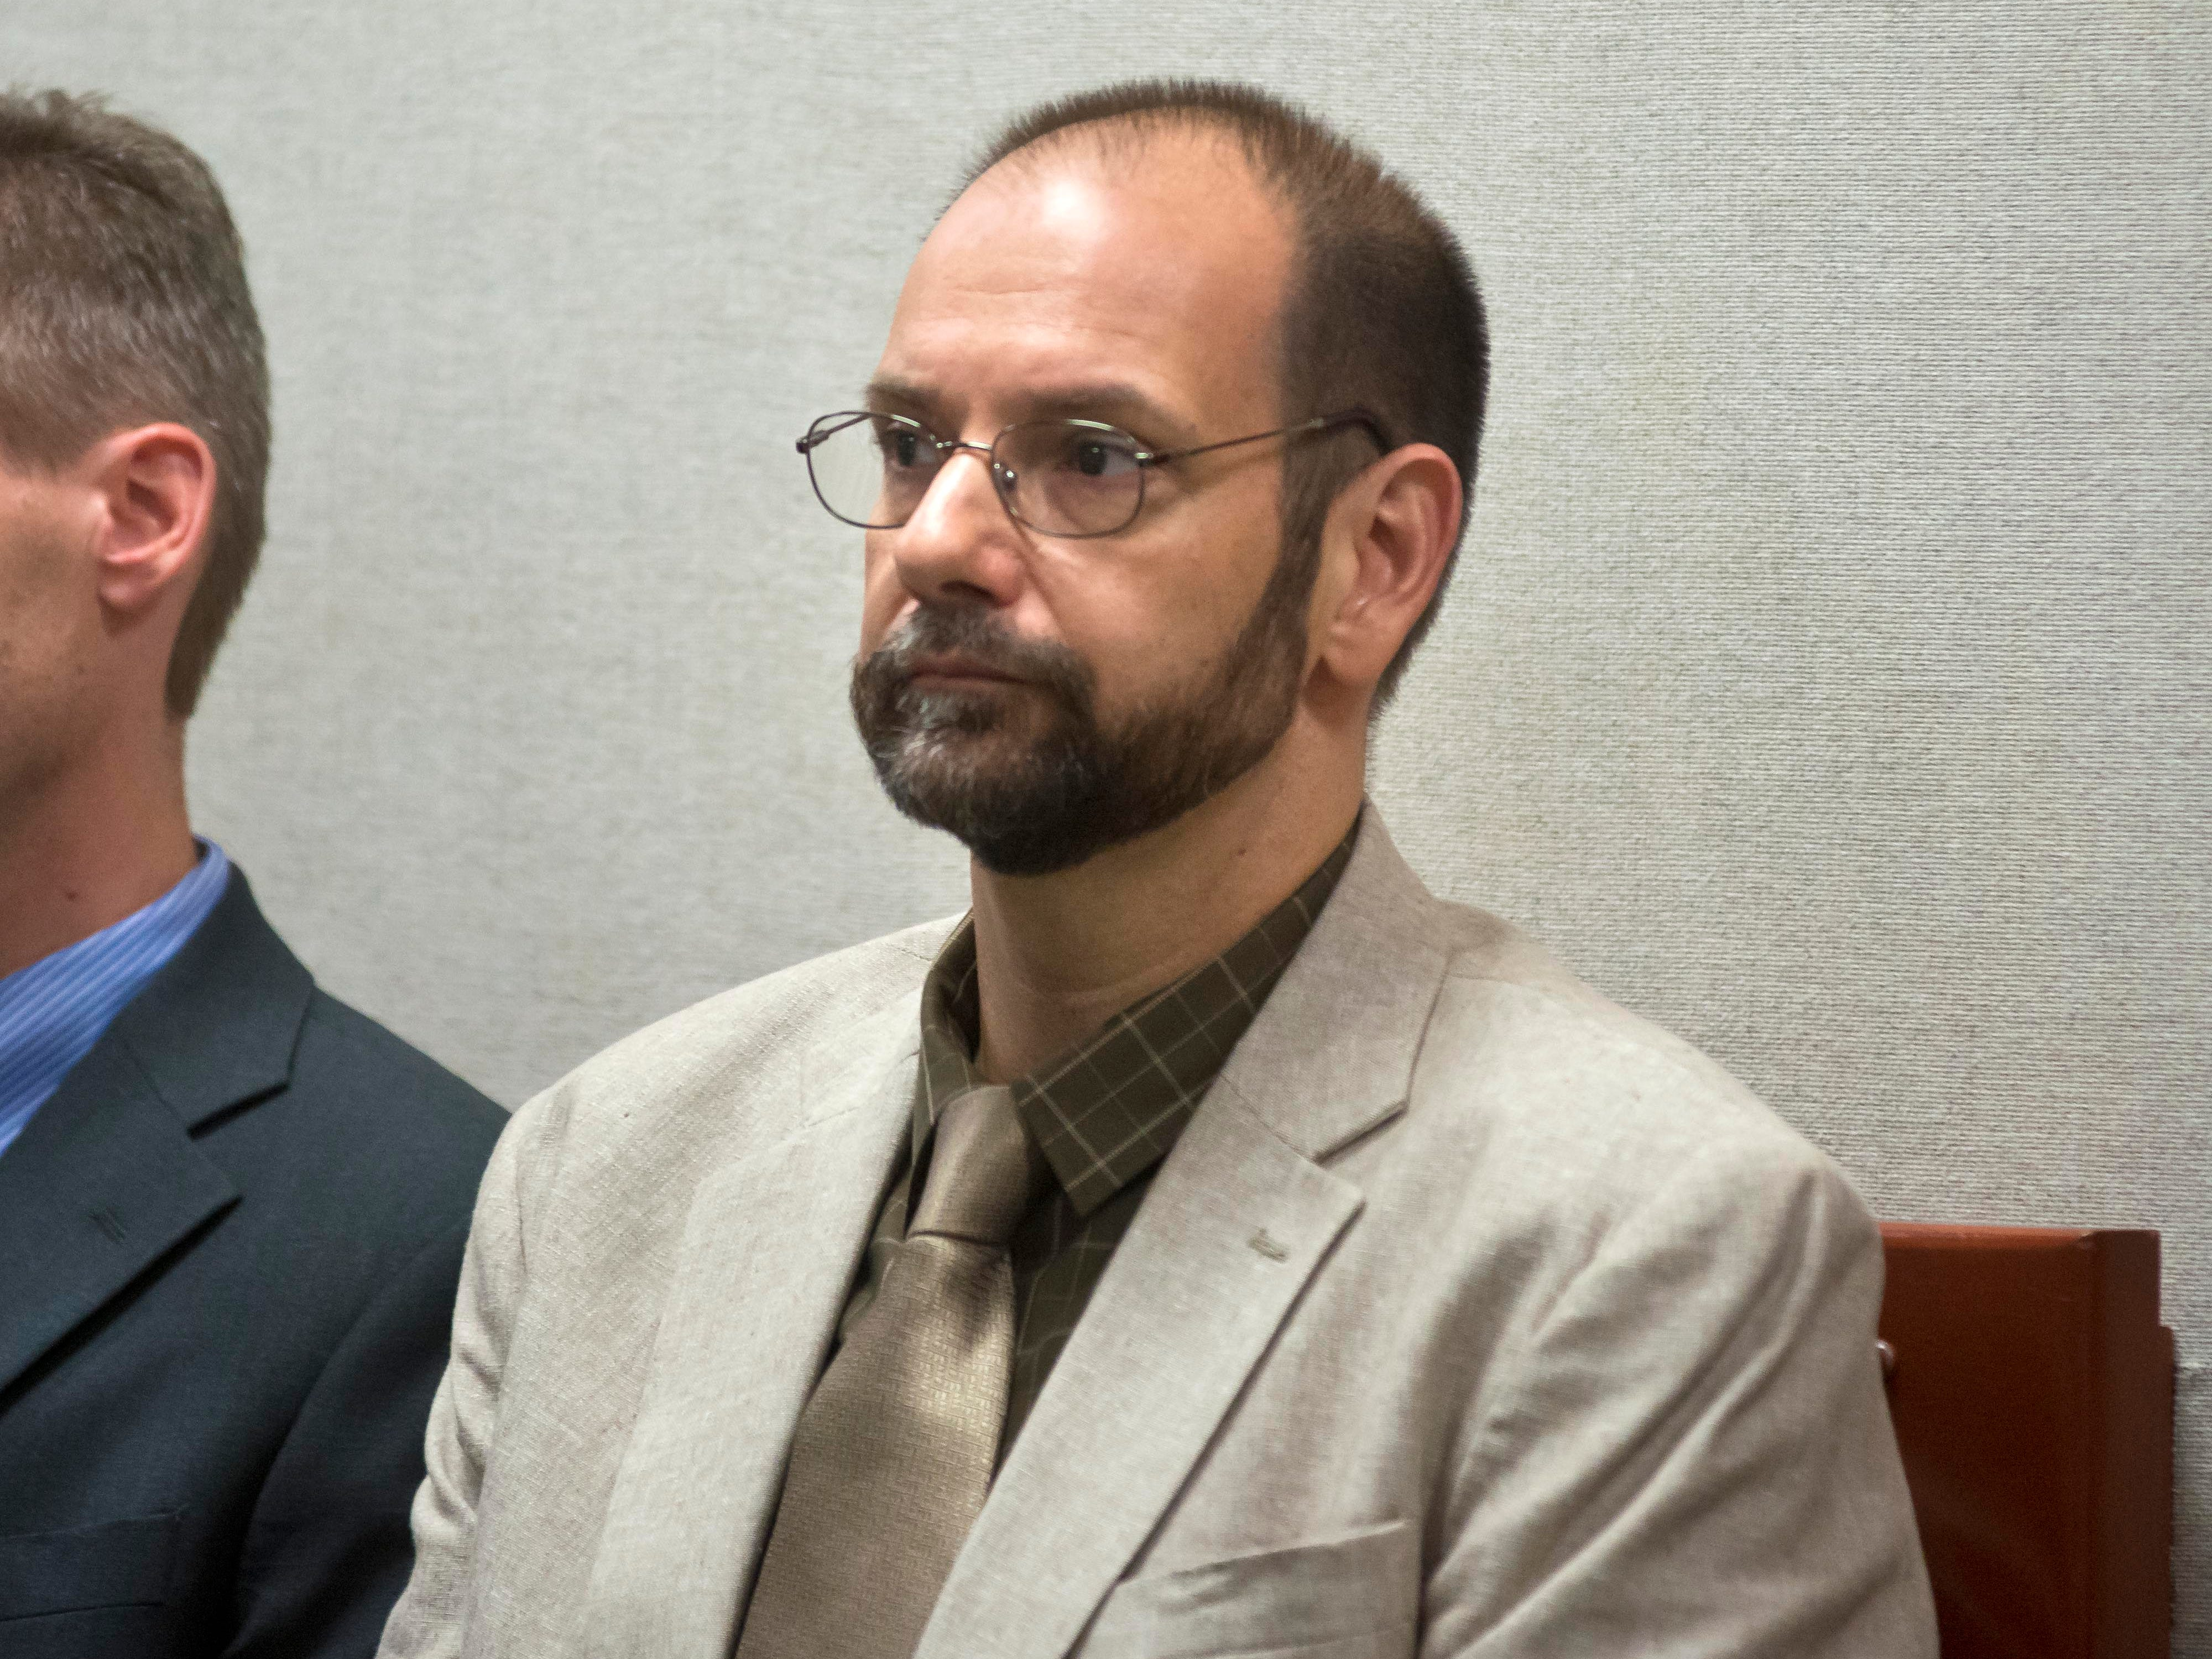 John Barone, superintendent of the Milton Town School District, looks on as five former Milton High School football players accused of hazing are arraigned Tuesday on charges of simple assault in Vermont Superior Court in Burlington.